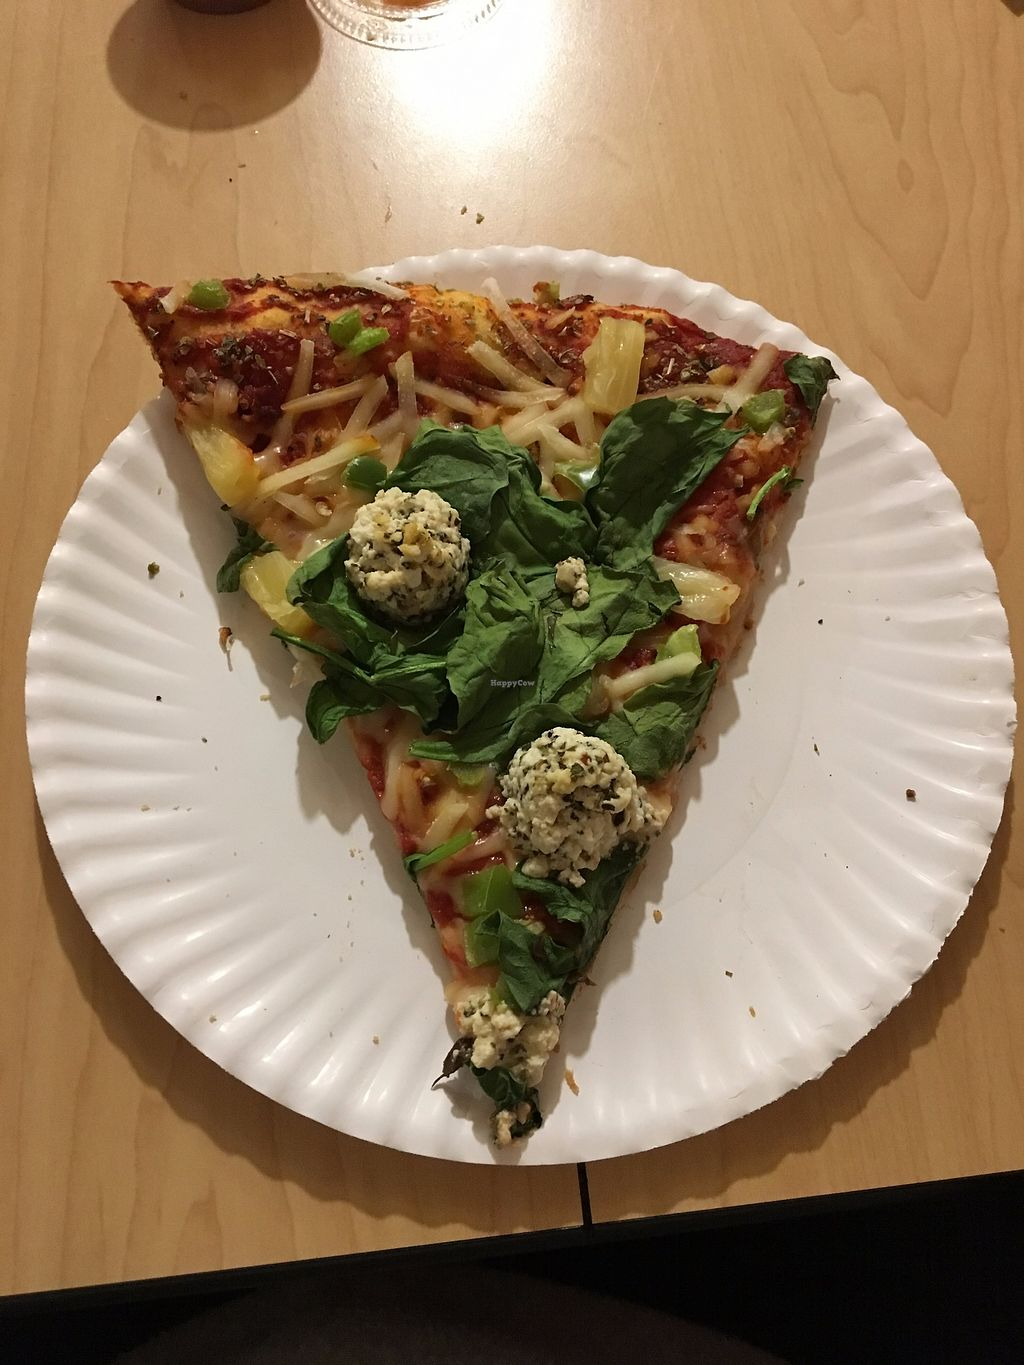 """Photo of Trail Rider Pizza  by <a href=""""/members/profile/veganrv"""">veganrv</a> <br/>Vegan pizza with spinach, pineapple, and tofu ricotta <br/> November 21, 2017  - <a href='/contact/abuse/image/102196/327864'>Report</a>"""